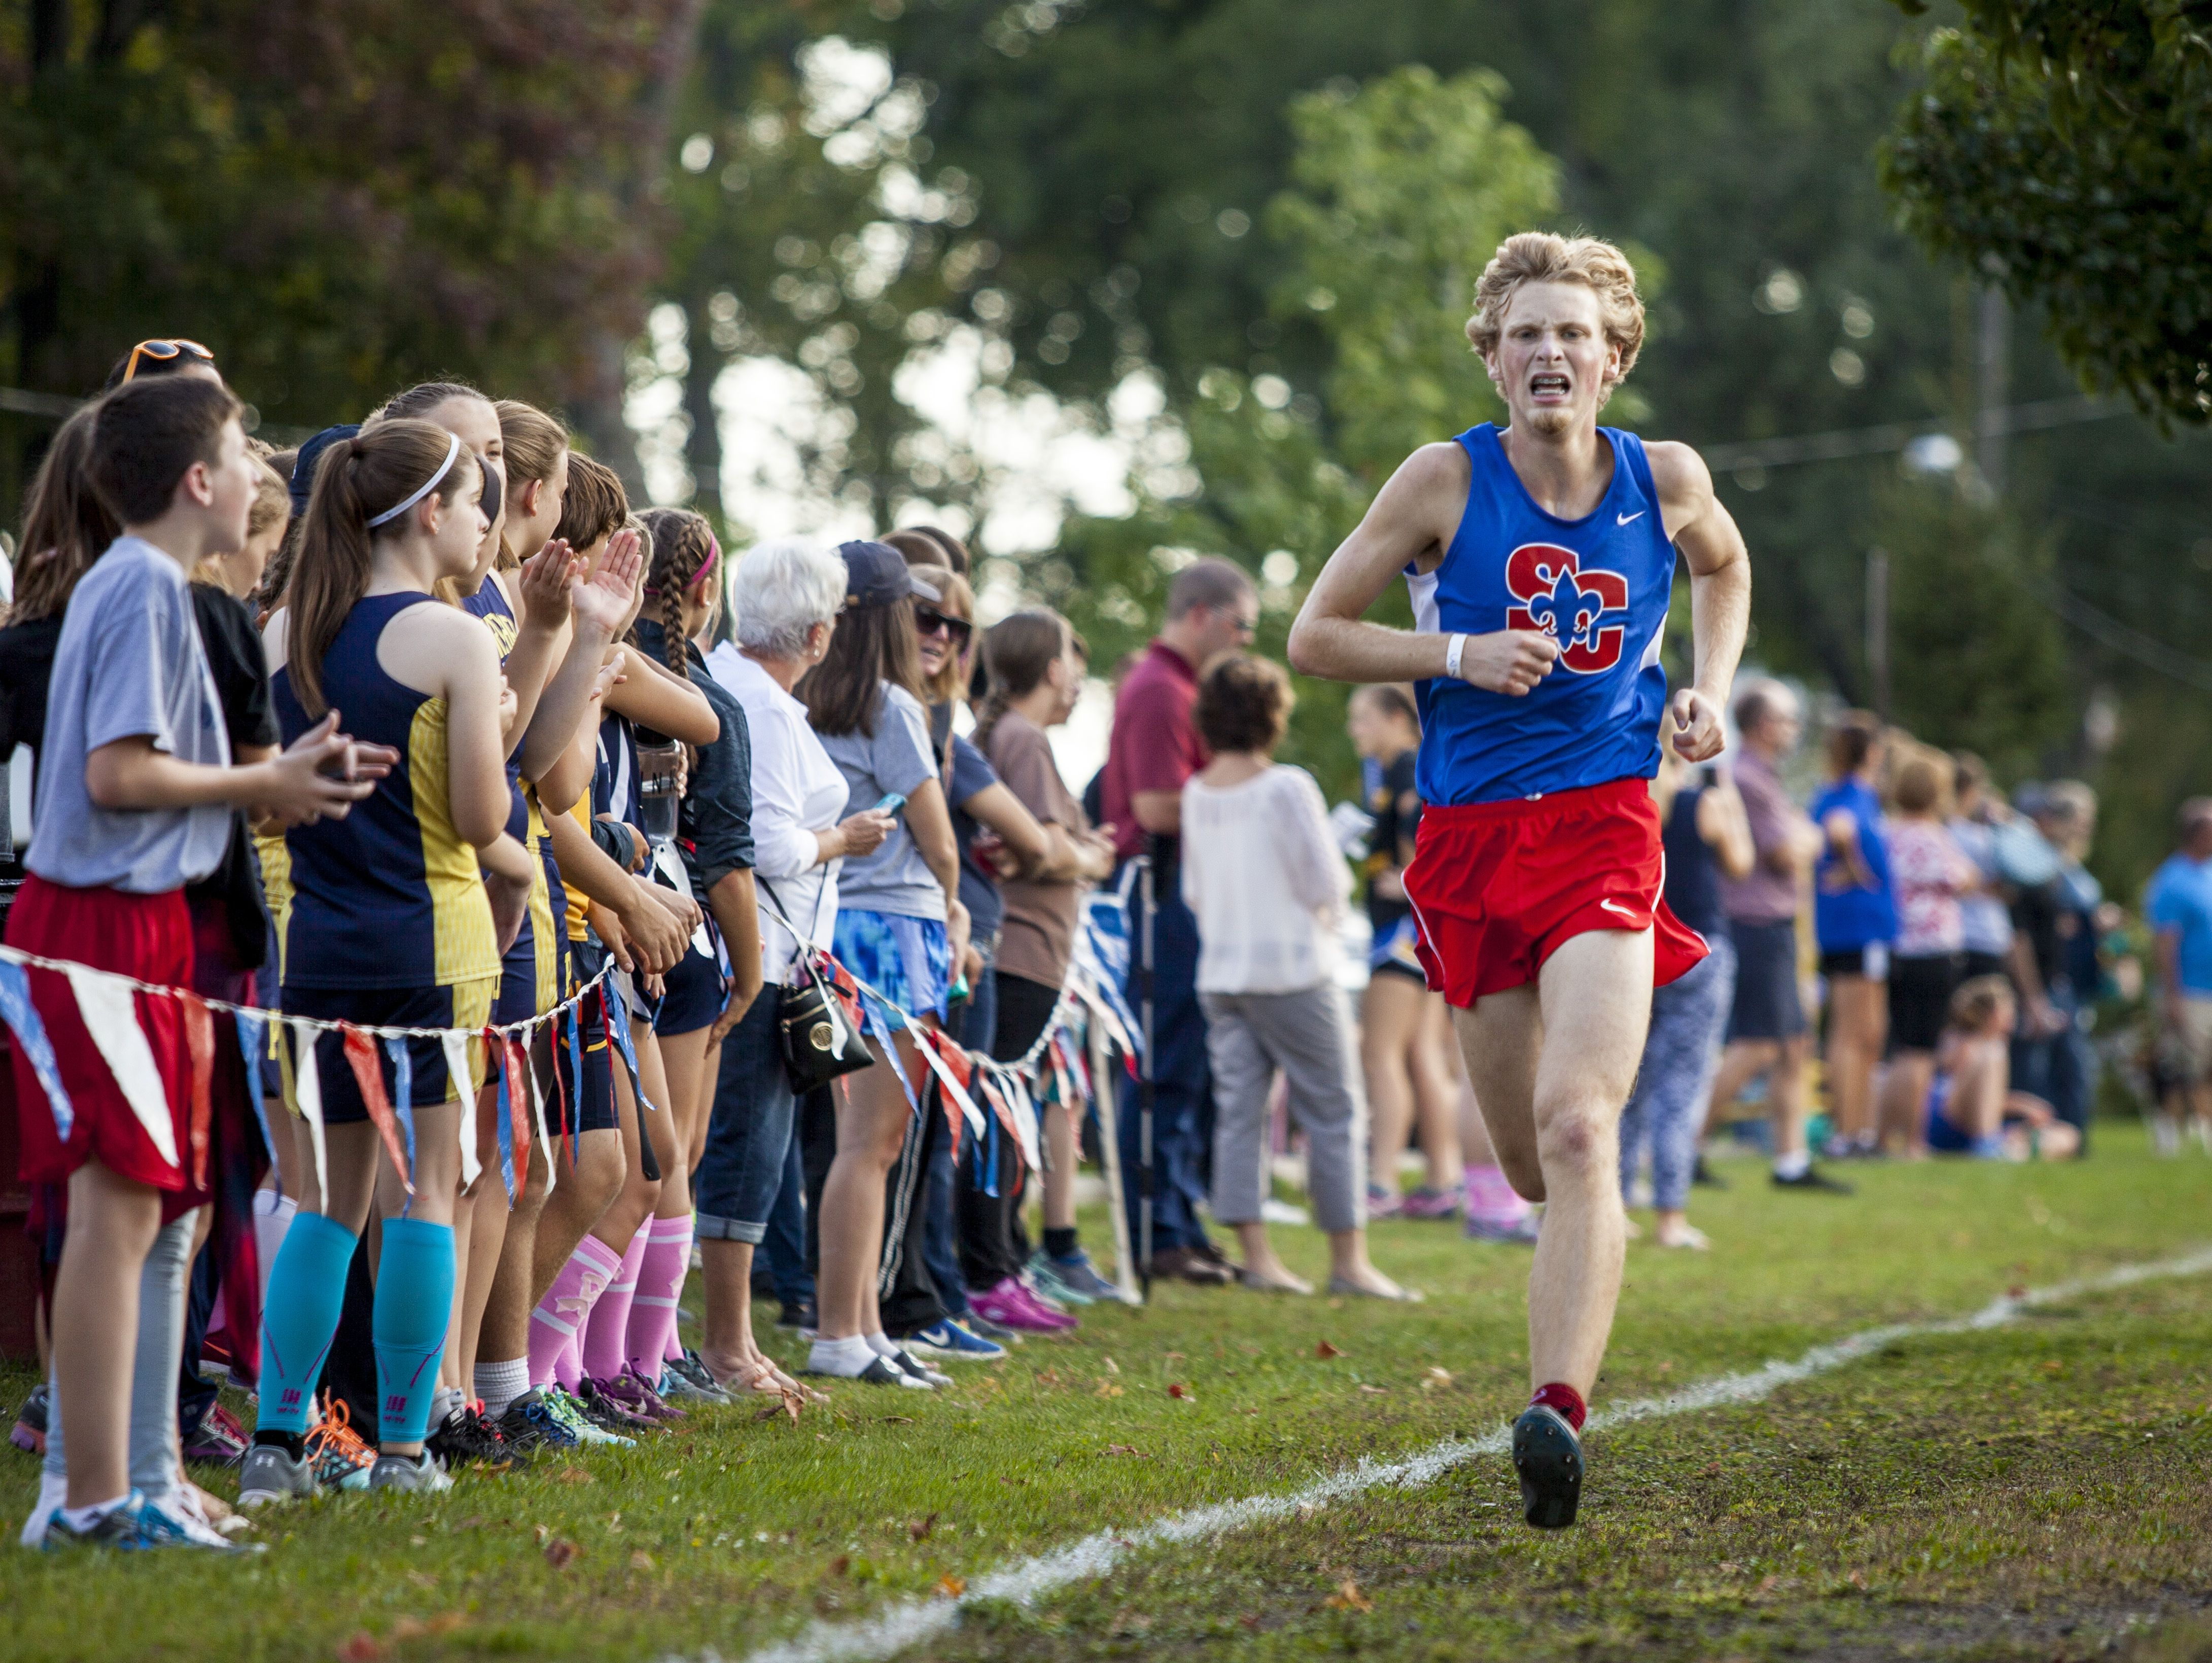 St. Clair's Josh Williams finishes fifth during the Marysville Invitational Thursday, Oct. 6, 2016 at Marysville City Park.